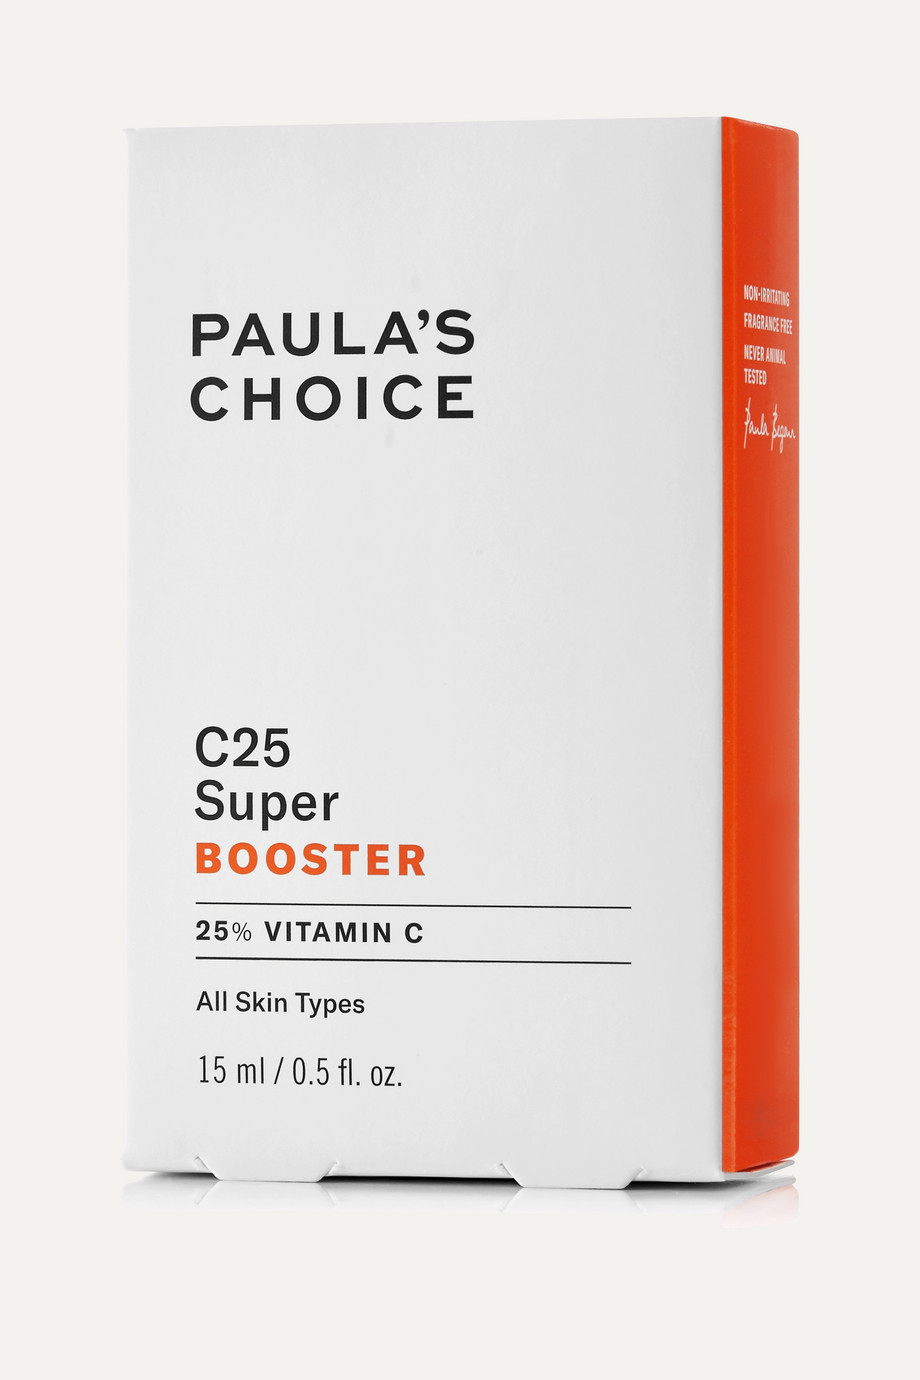 Paula's Choice C25 Super Booster, 15ml